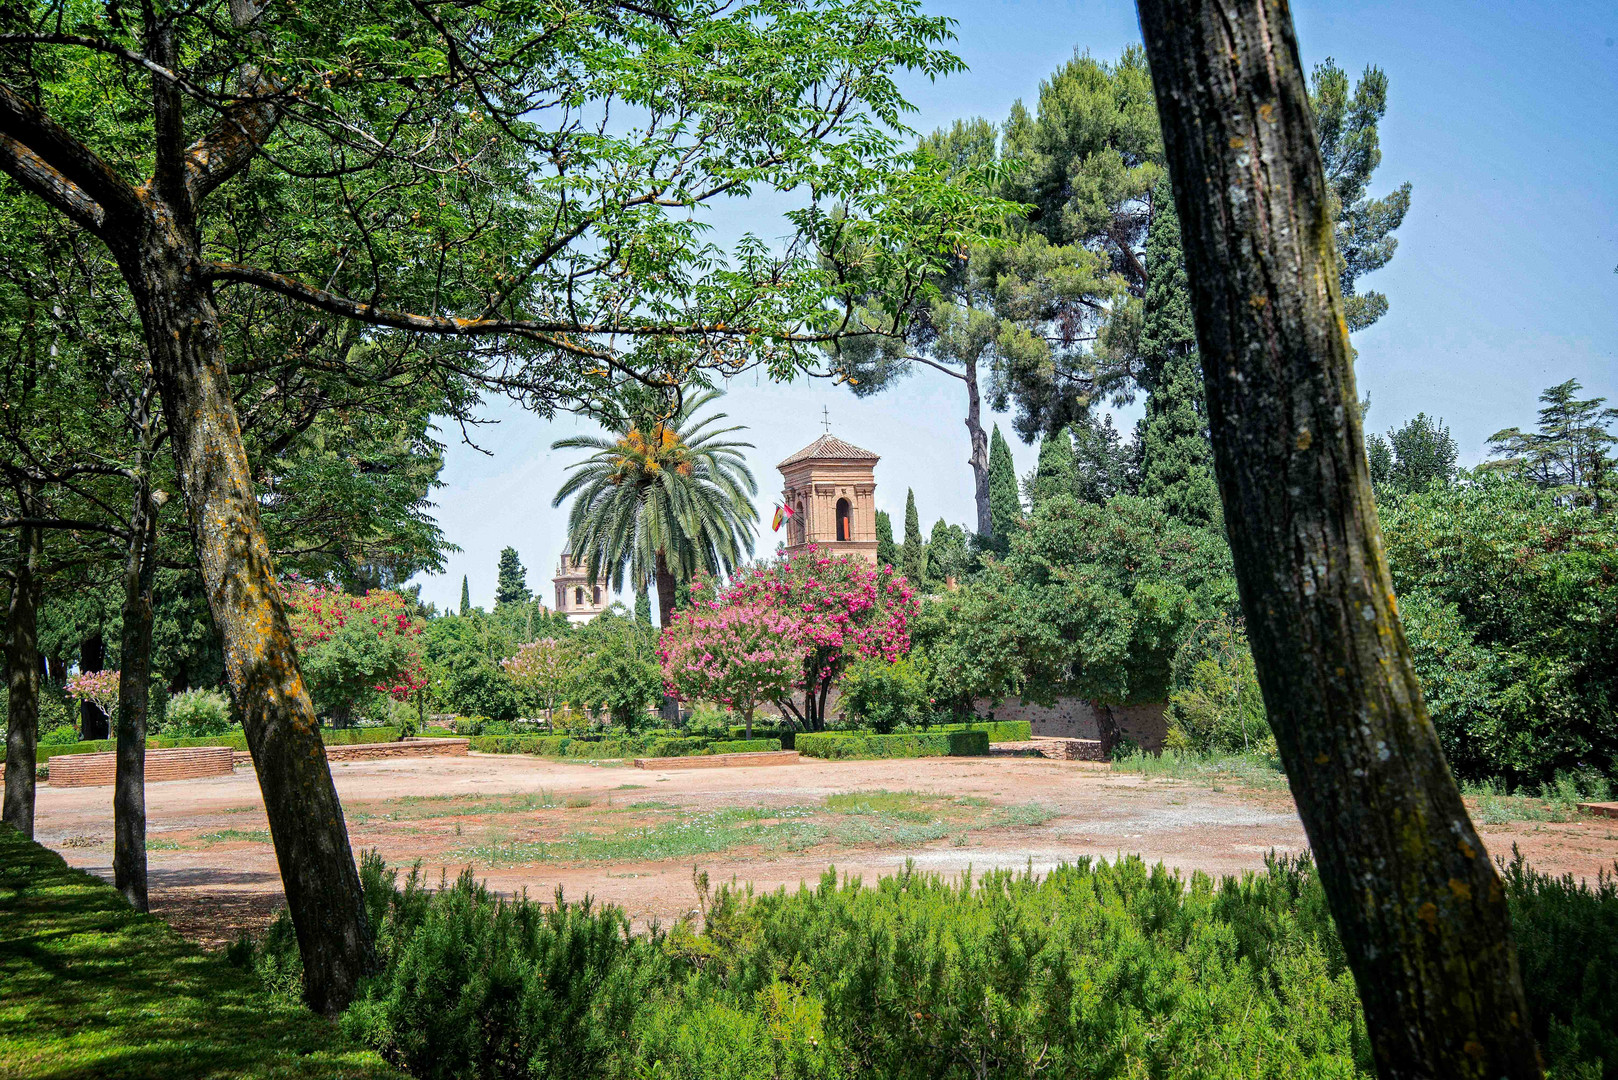 In the gardens of Alhambra